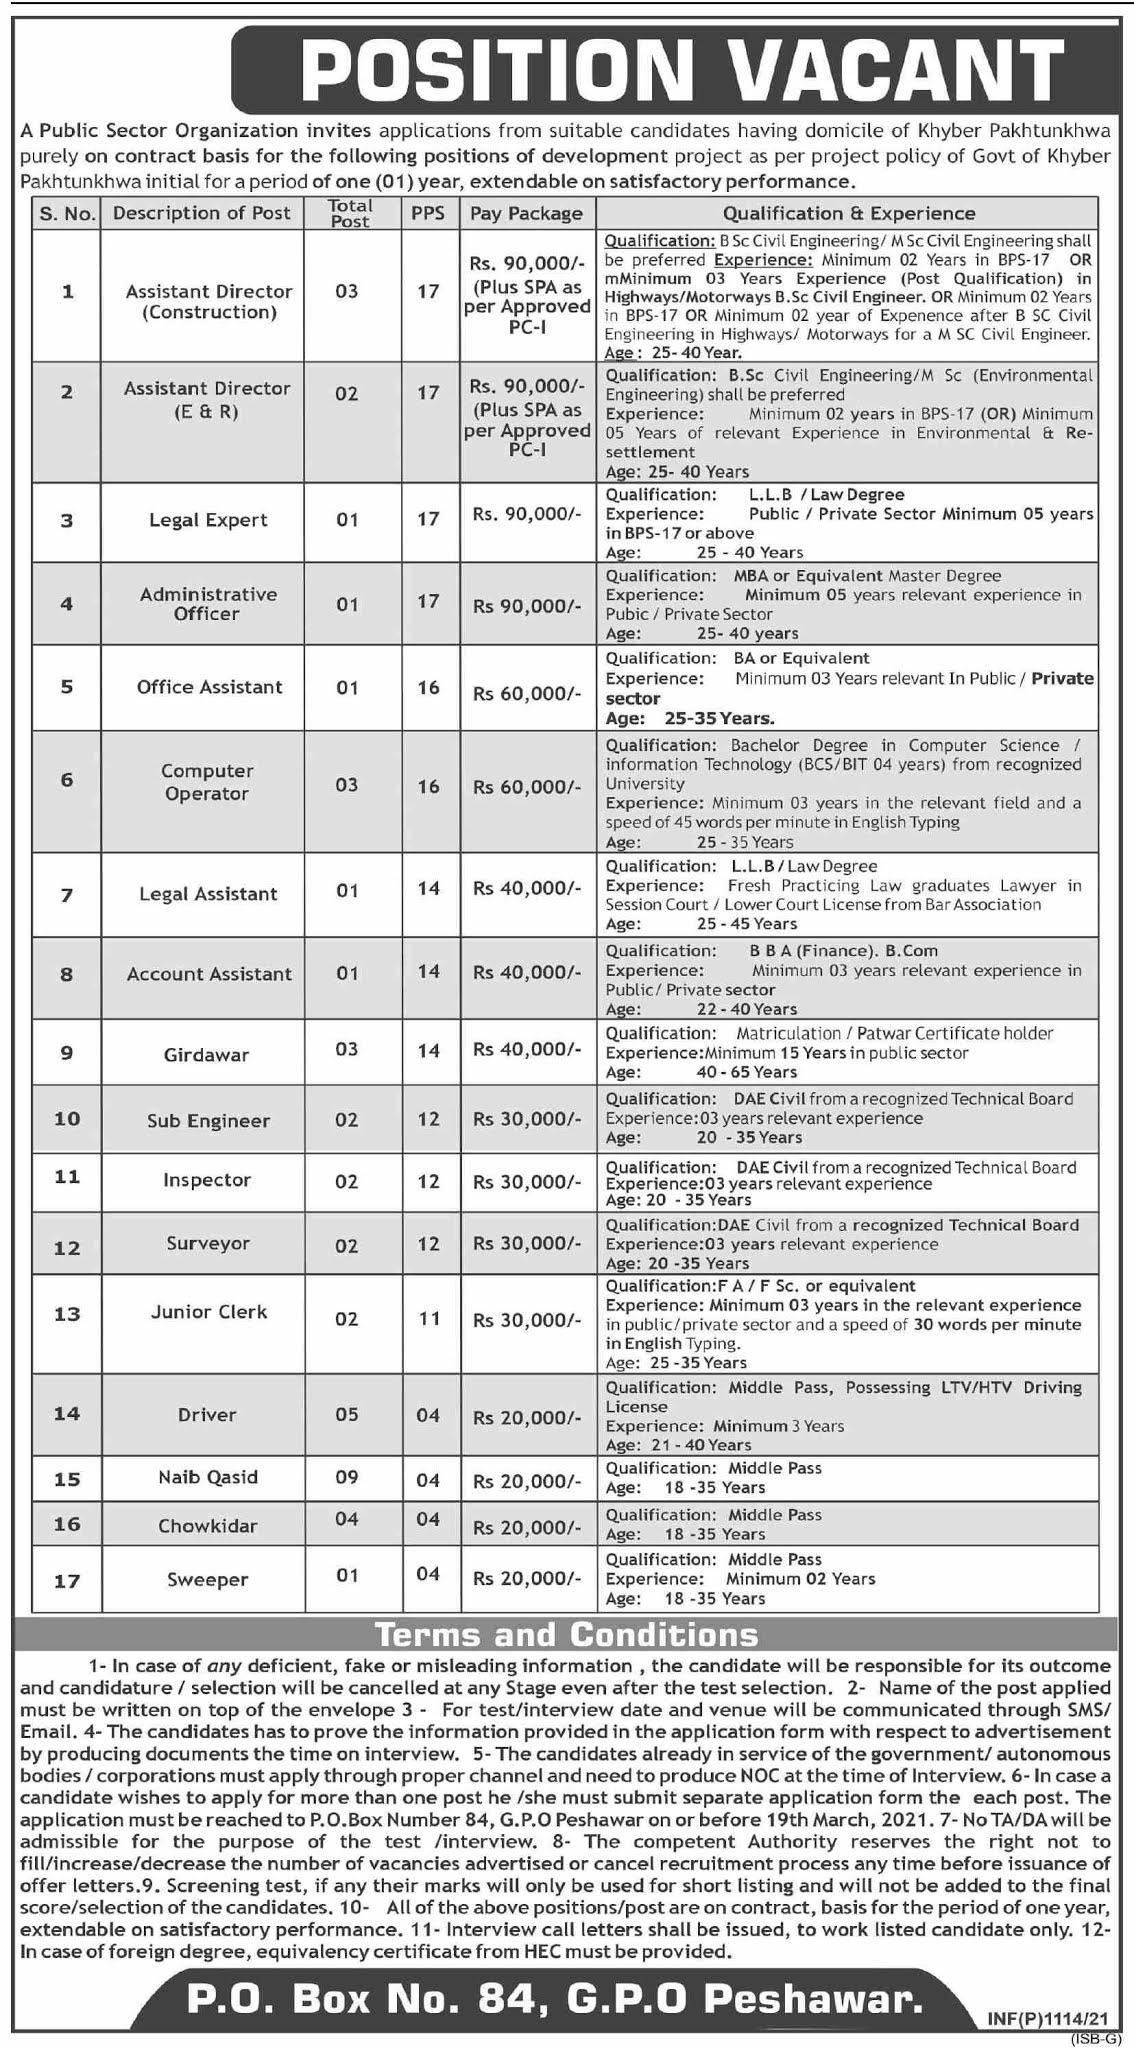 Public Sector Organization Jobs 2021 - PO Box 84 Jobs 2021 - Latest Govt Jobs 2021 For Male and Female in Pakistan 2021